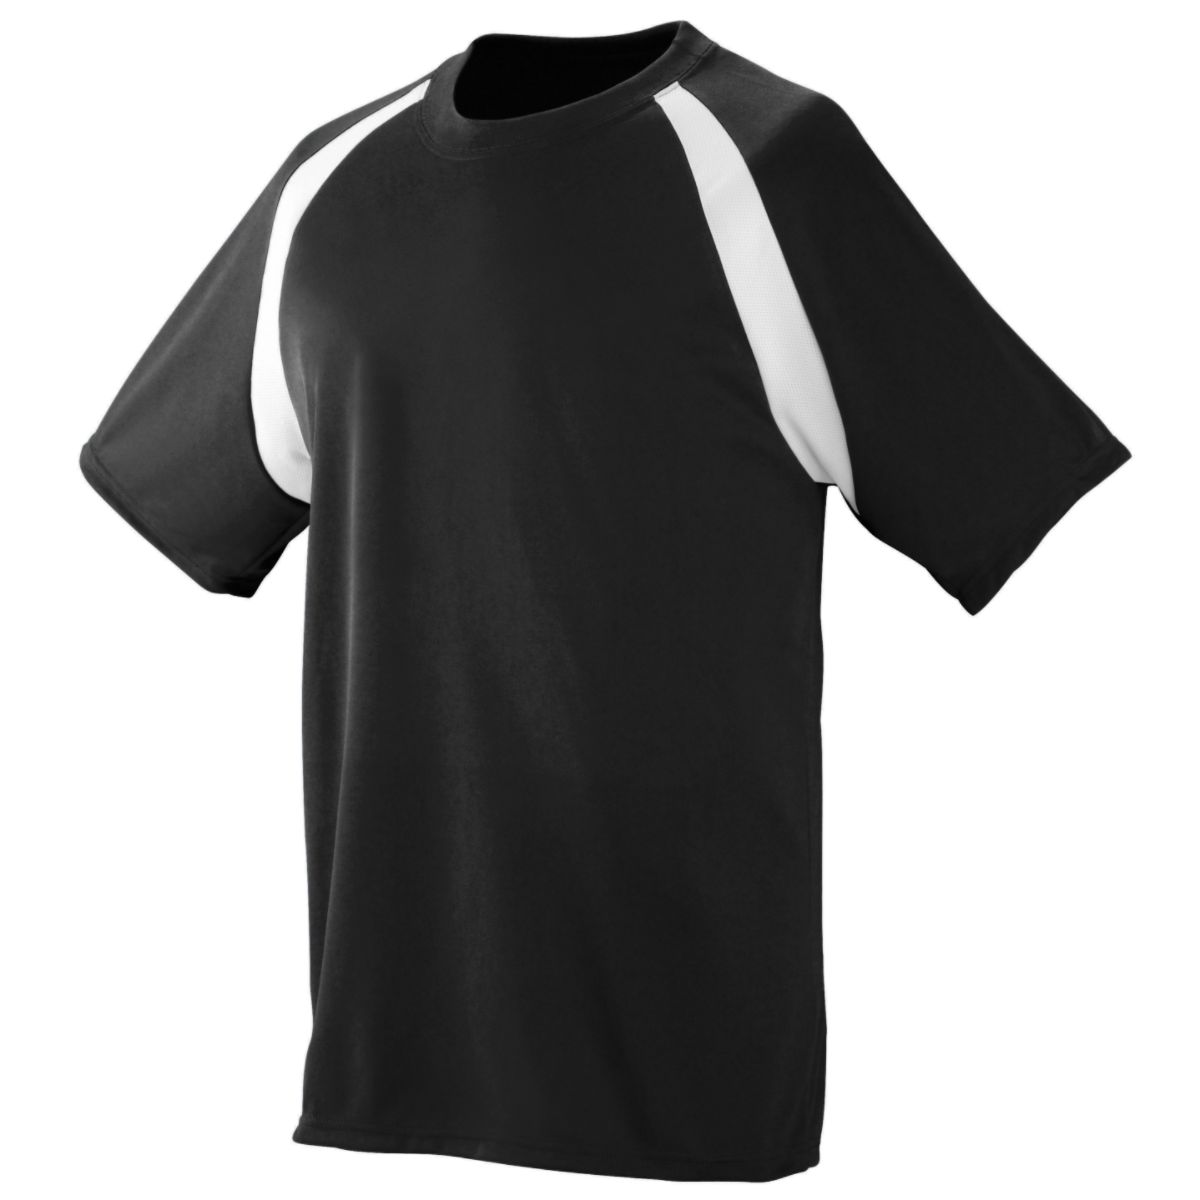 Augusta Yth Wicking Color Block Jersey Blk/Whi S - image 1 of 1